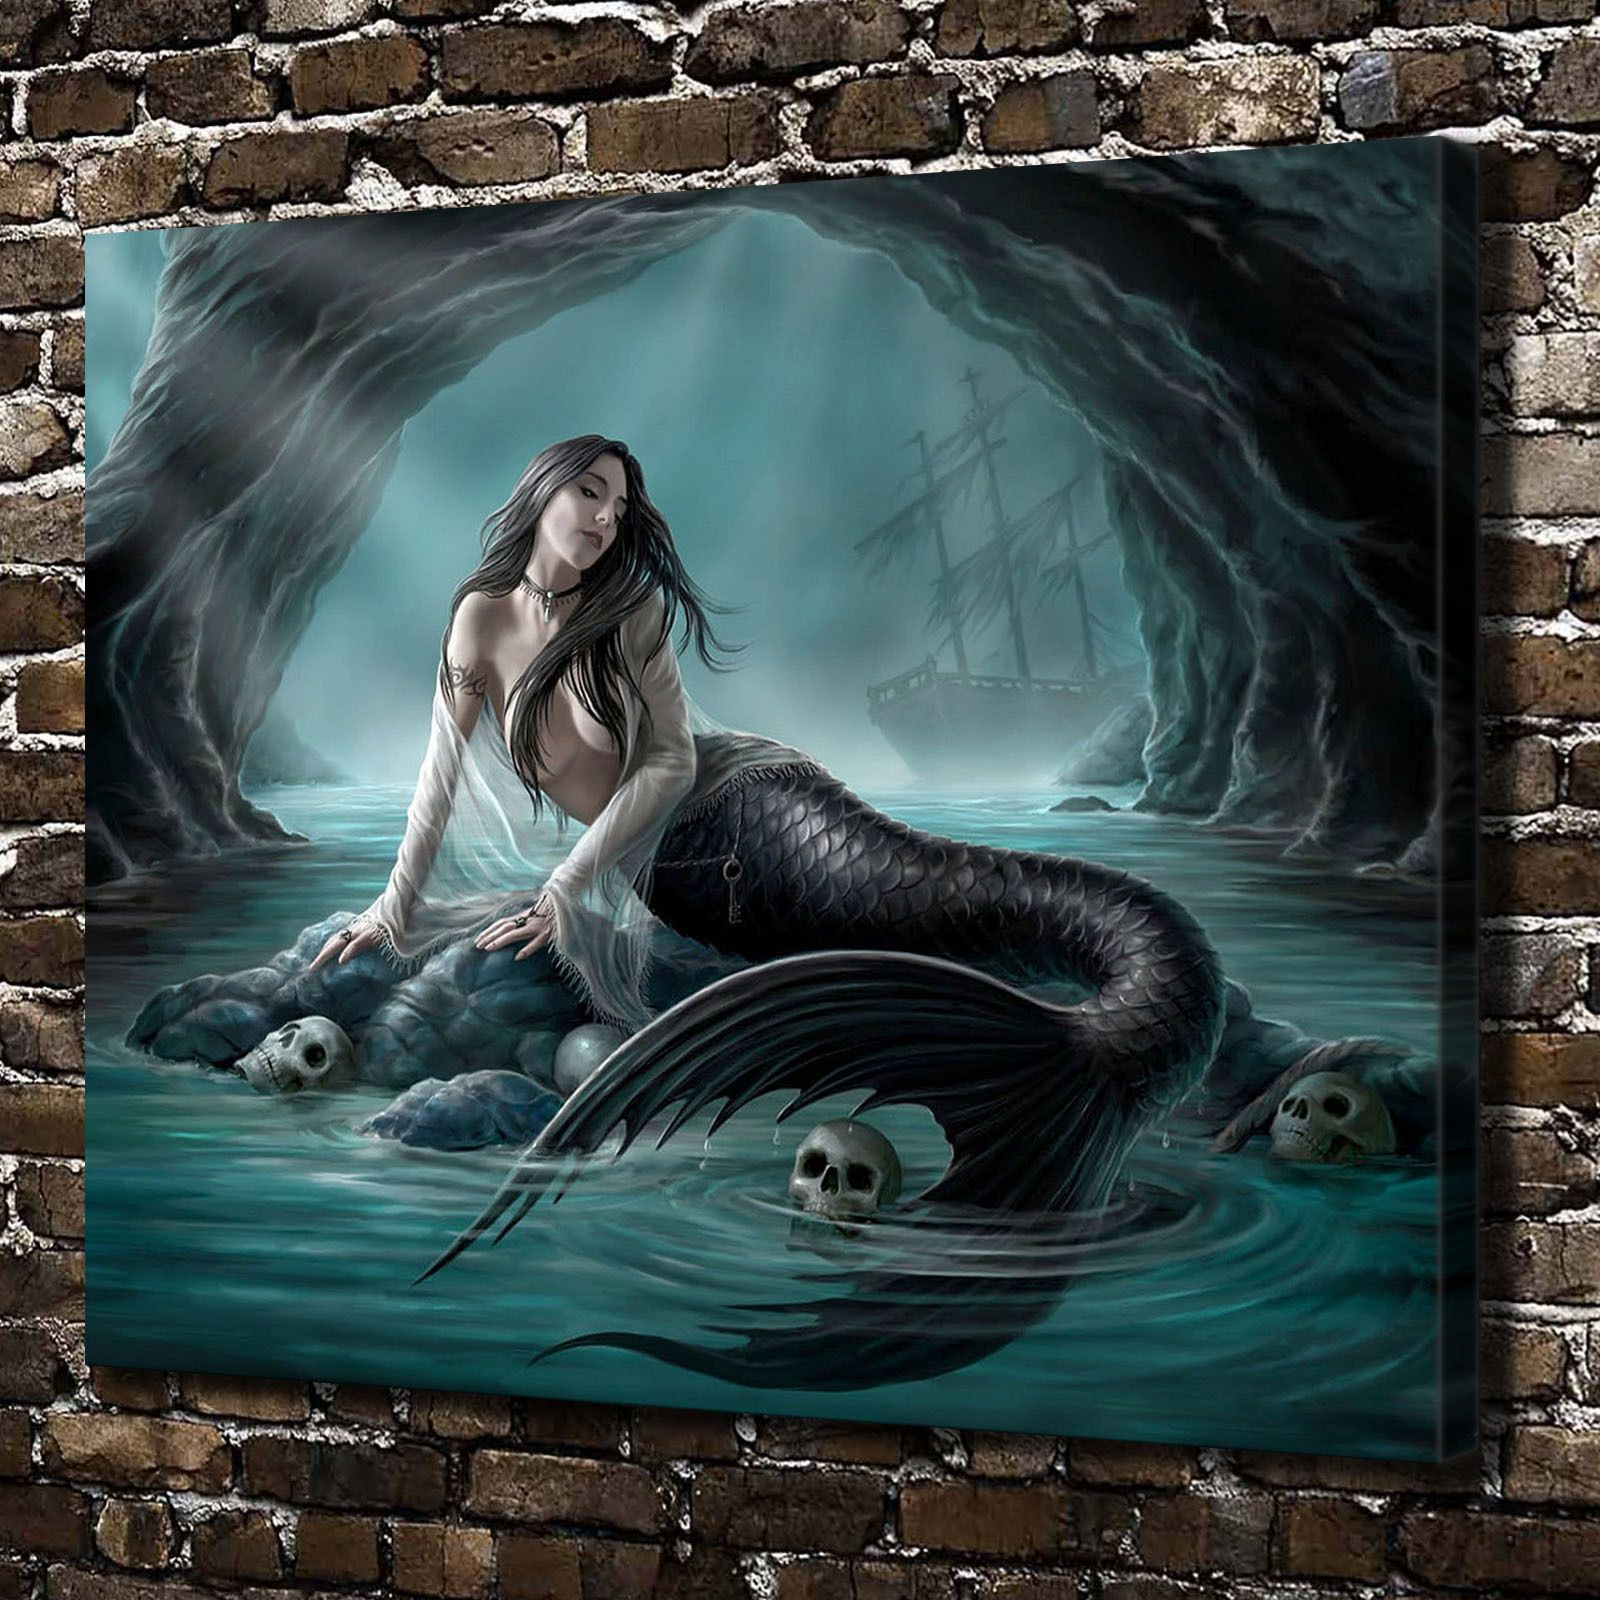 Stacey Kurtz Art For Mural In Boys: Cave Skull Siren Mermaid Painting HD Print On Canvas Home